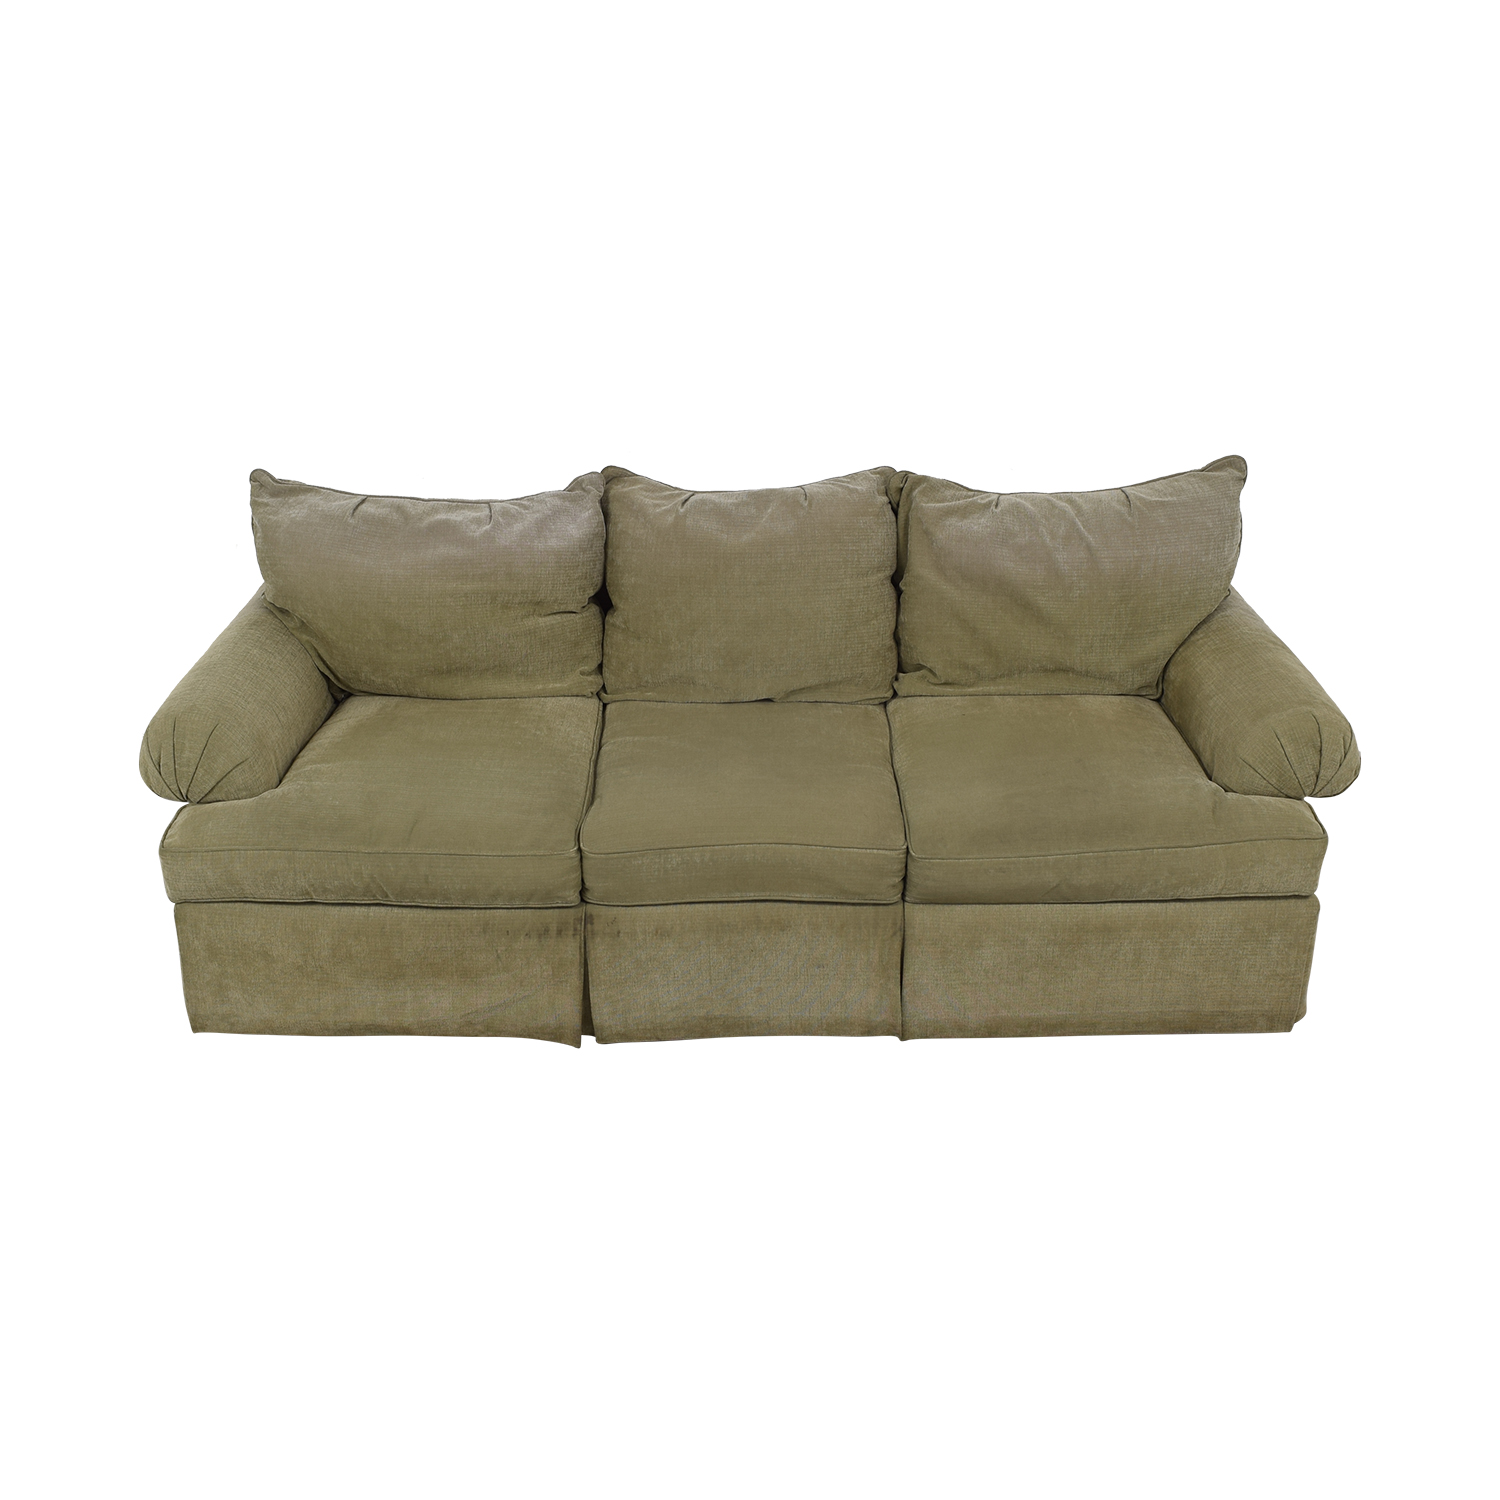 Bernhardt Bernhardt Three-Cushion Sofa price